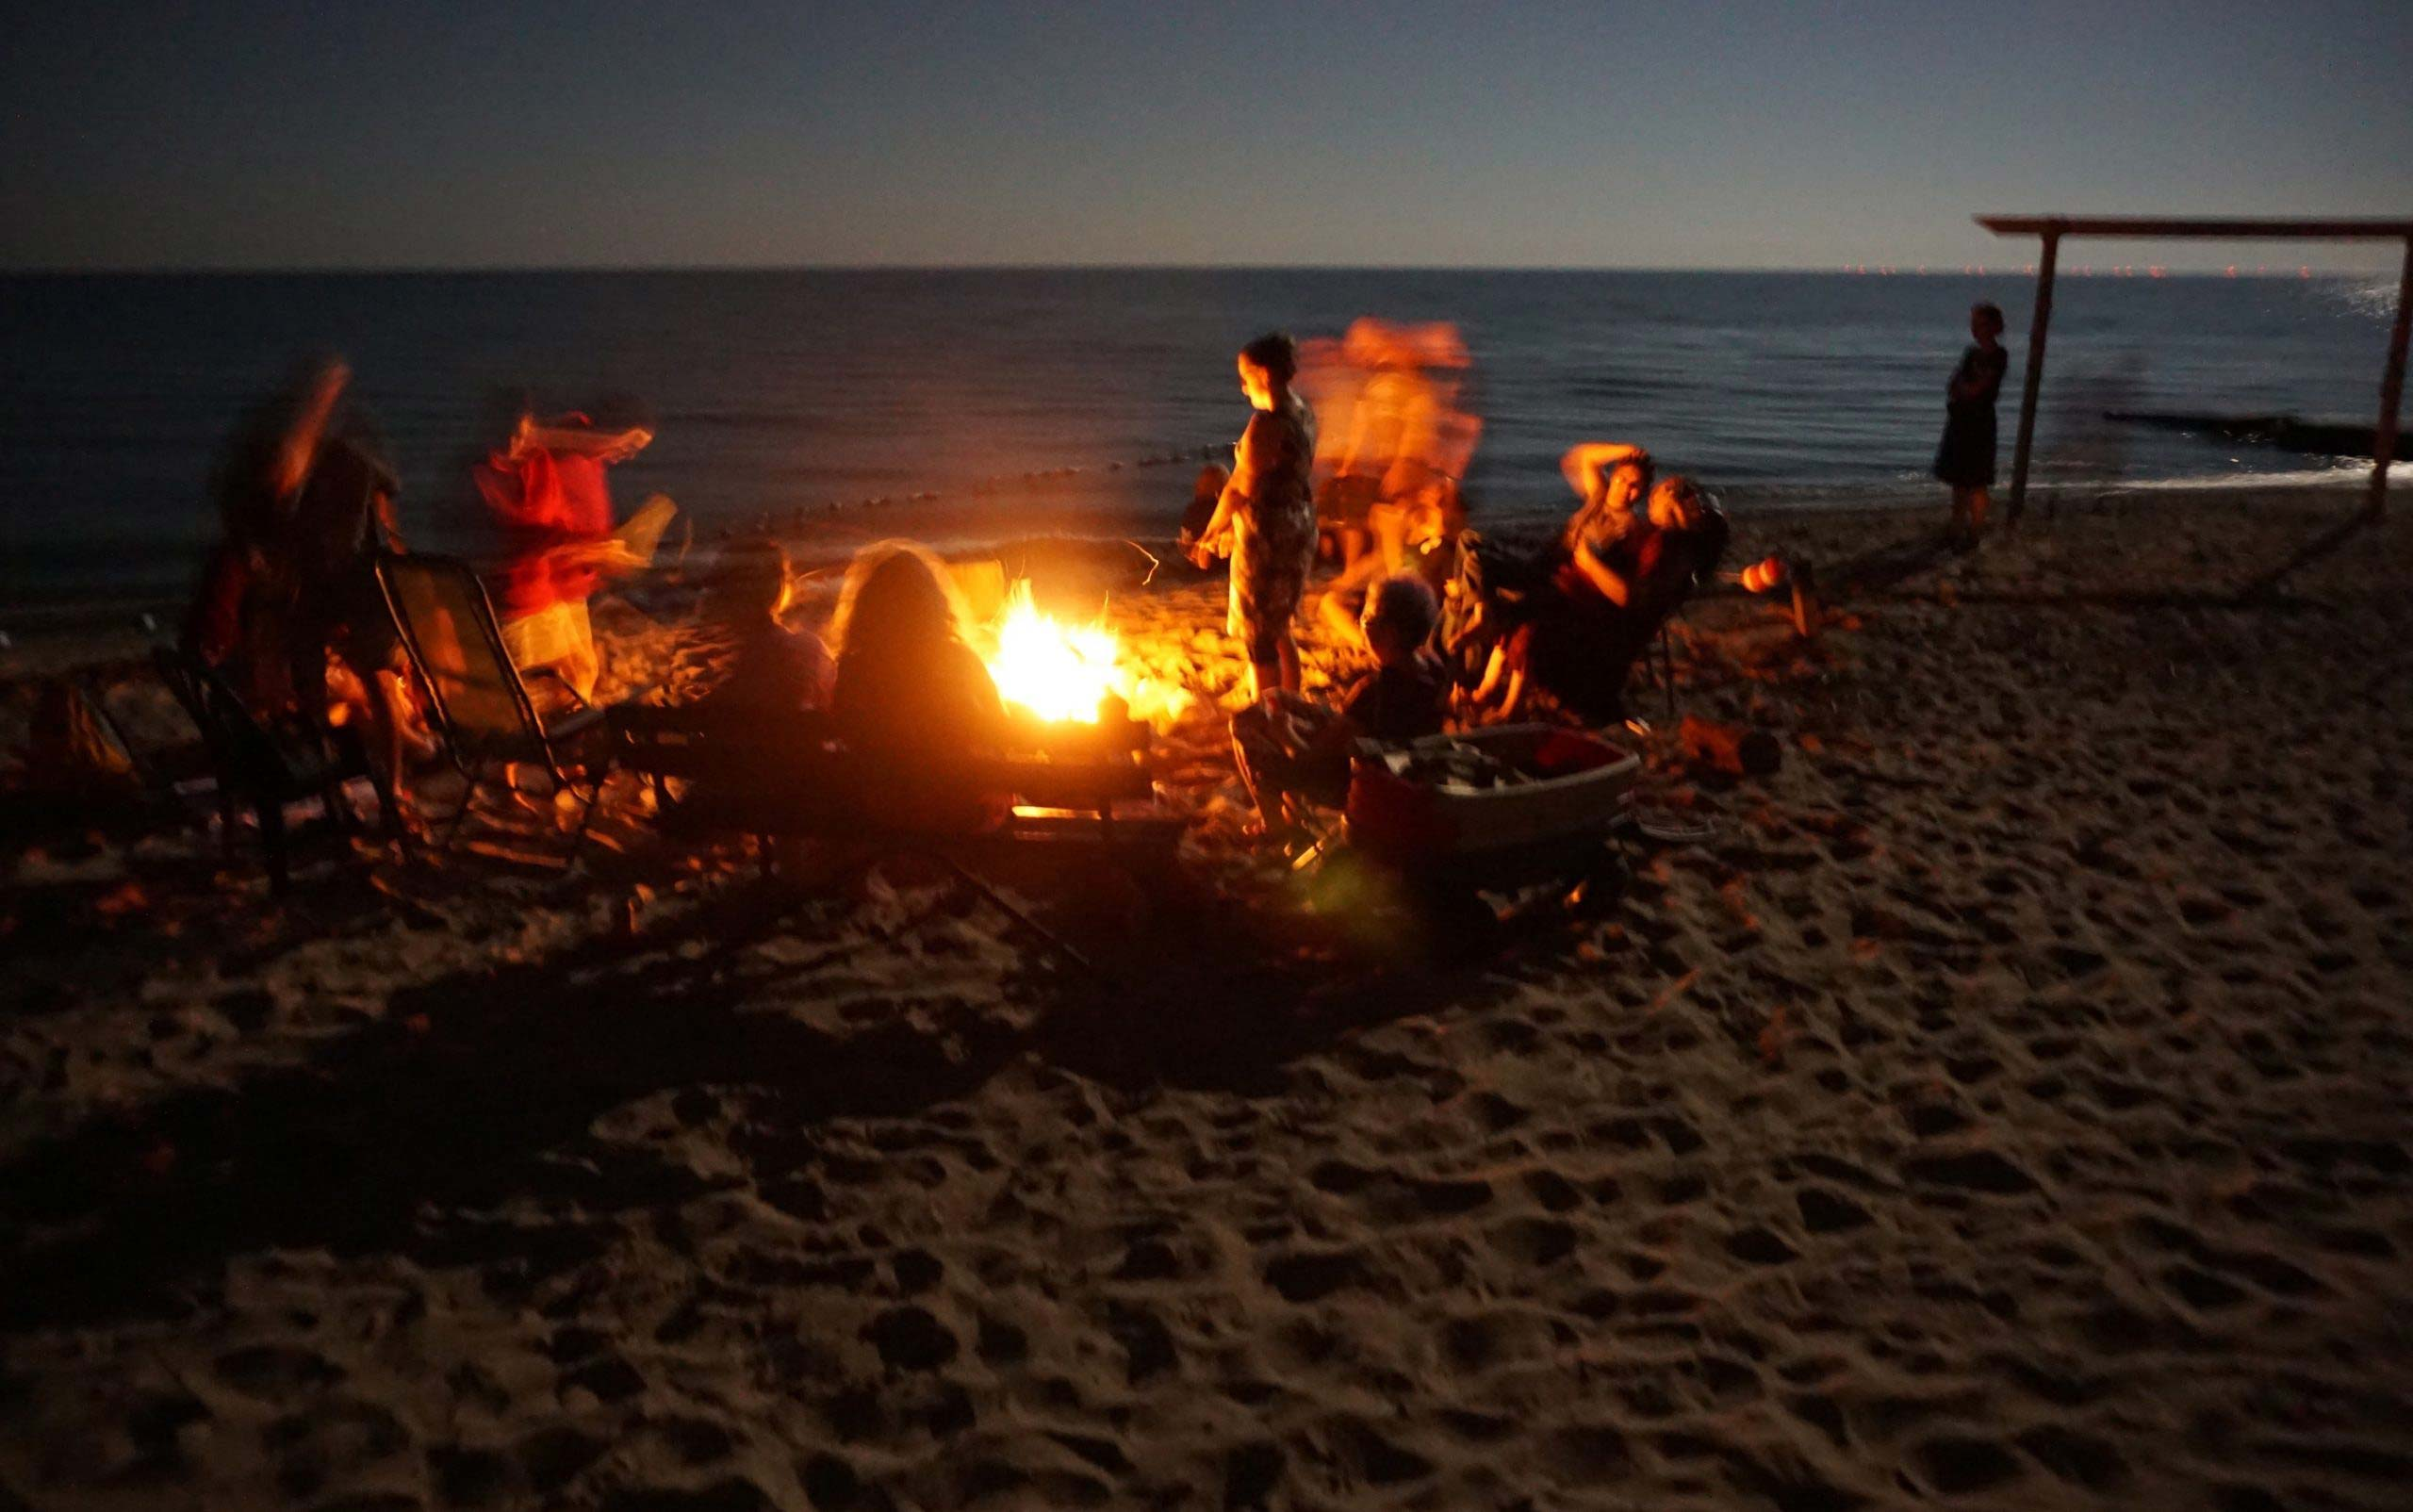 Campers gathered around a bonfire on the beach